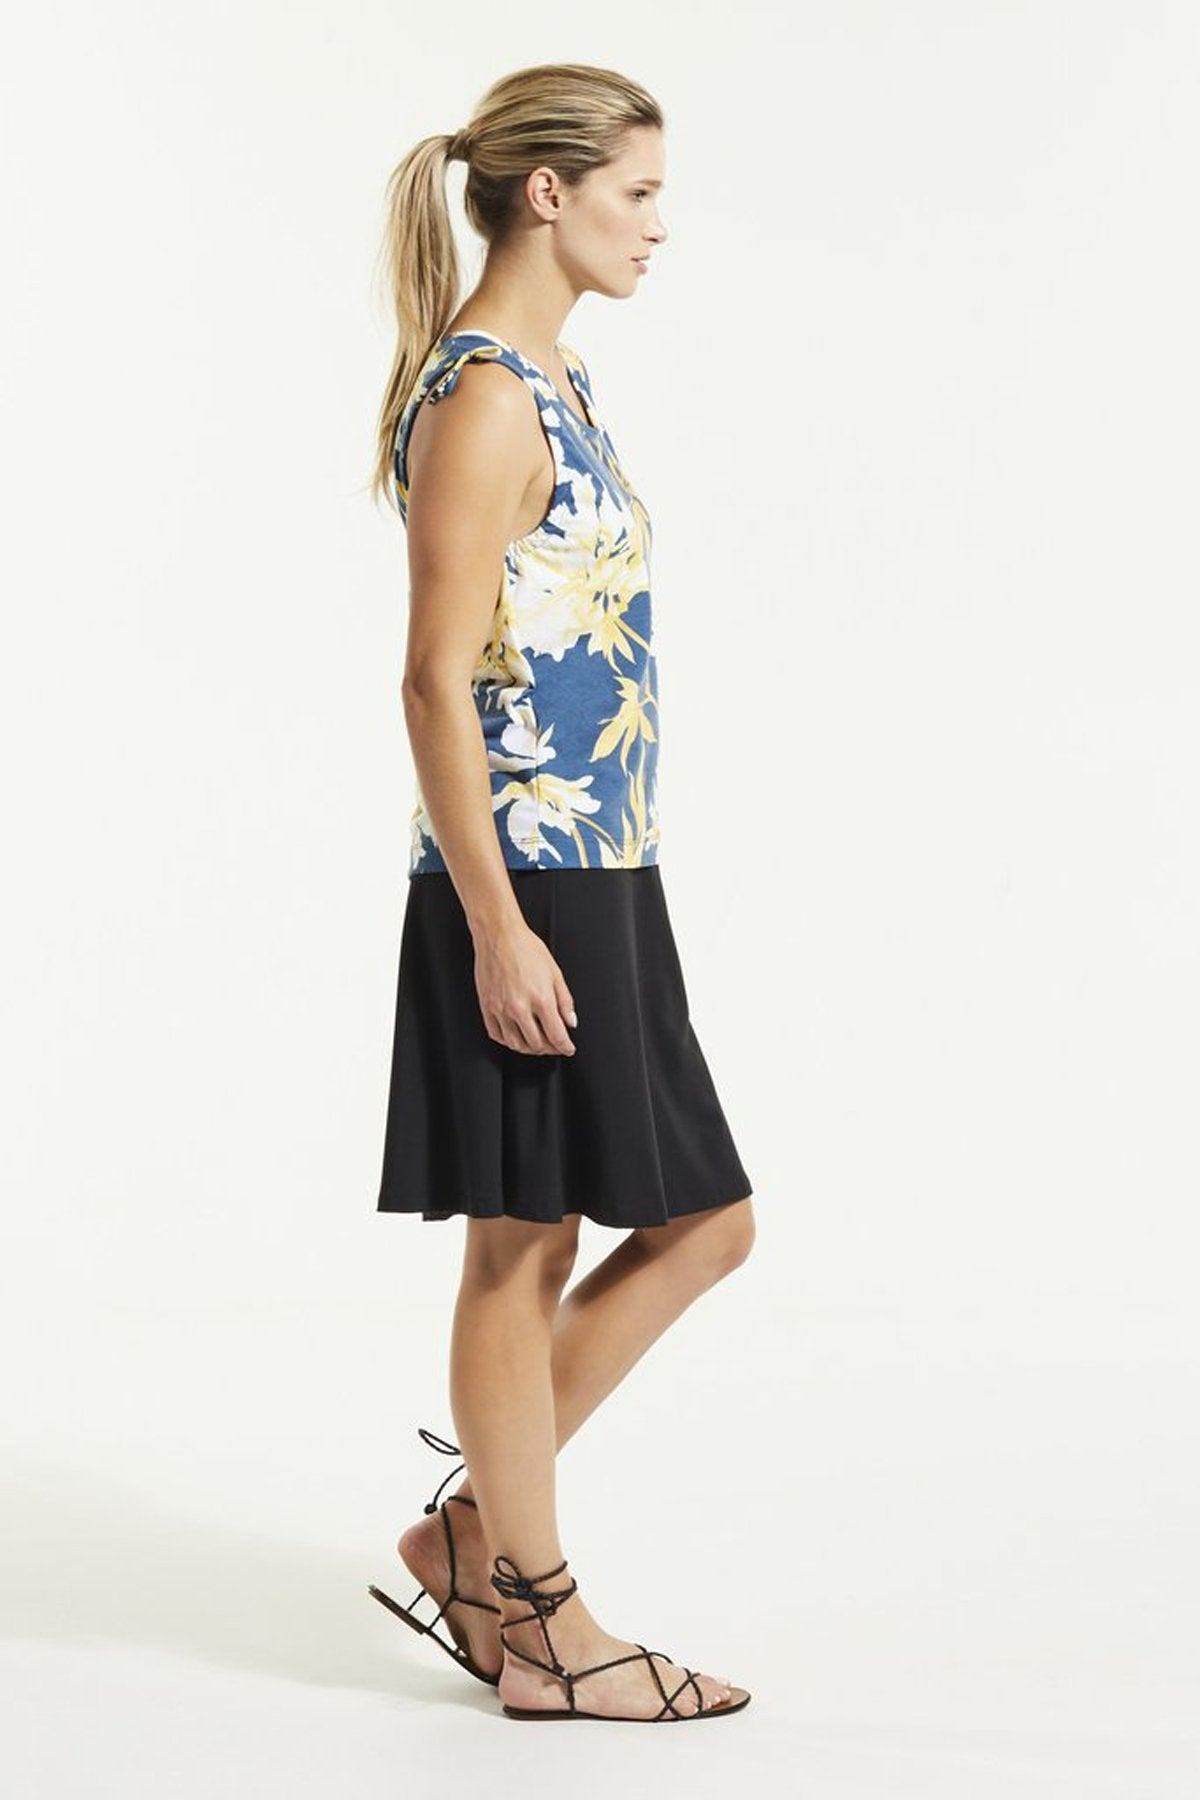 SUD Top by FIG Clothing, Bowerbird Carnation, side view, tank top, drawstrings at shoulders, Drirelease fabric, sizes XS to XL, made in Canada